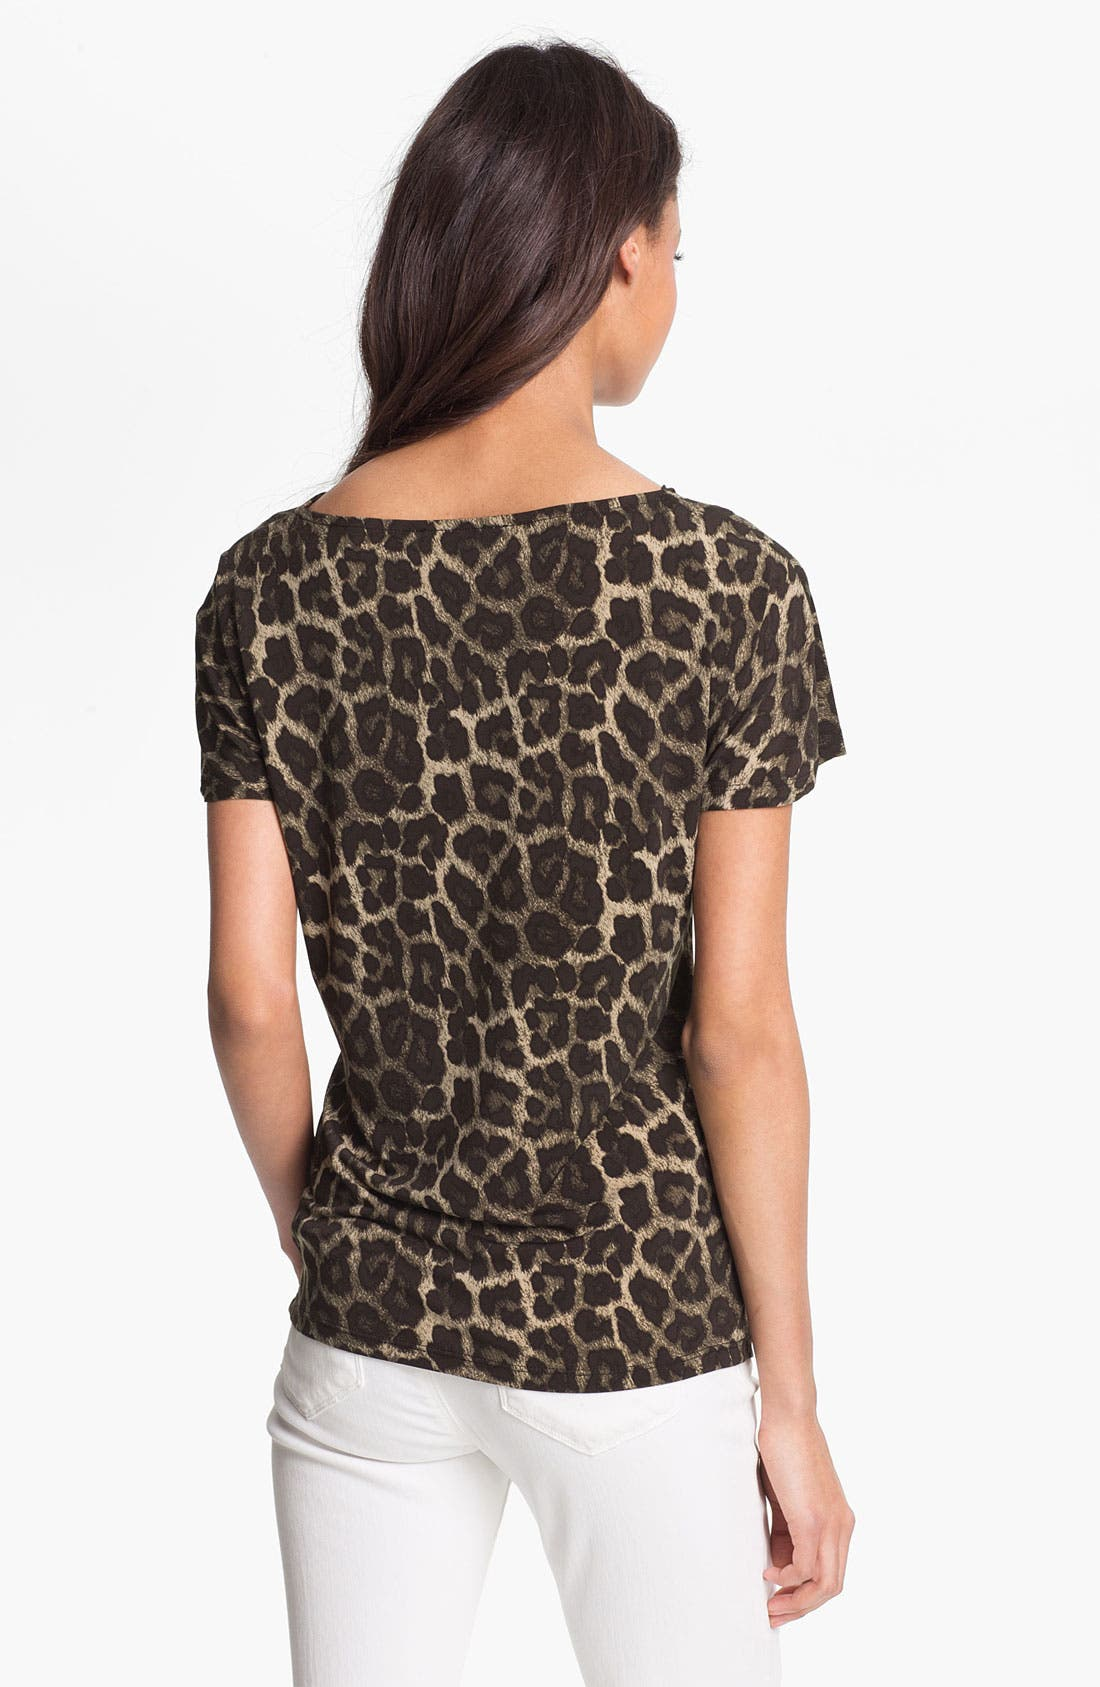 Alternate Image 2  - MICHAEL Michael Kors 'Savannah' Leopard Print Top (Petite)